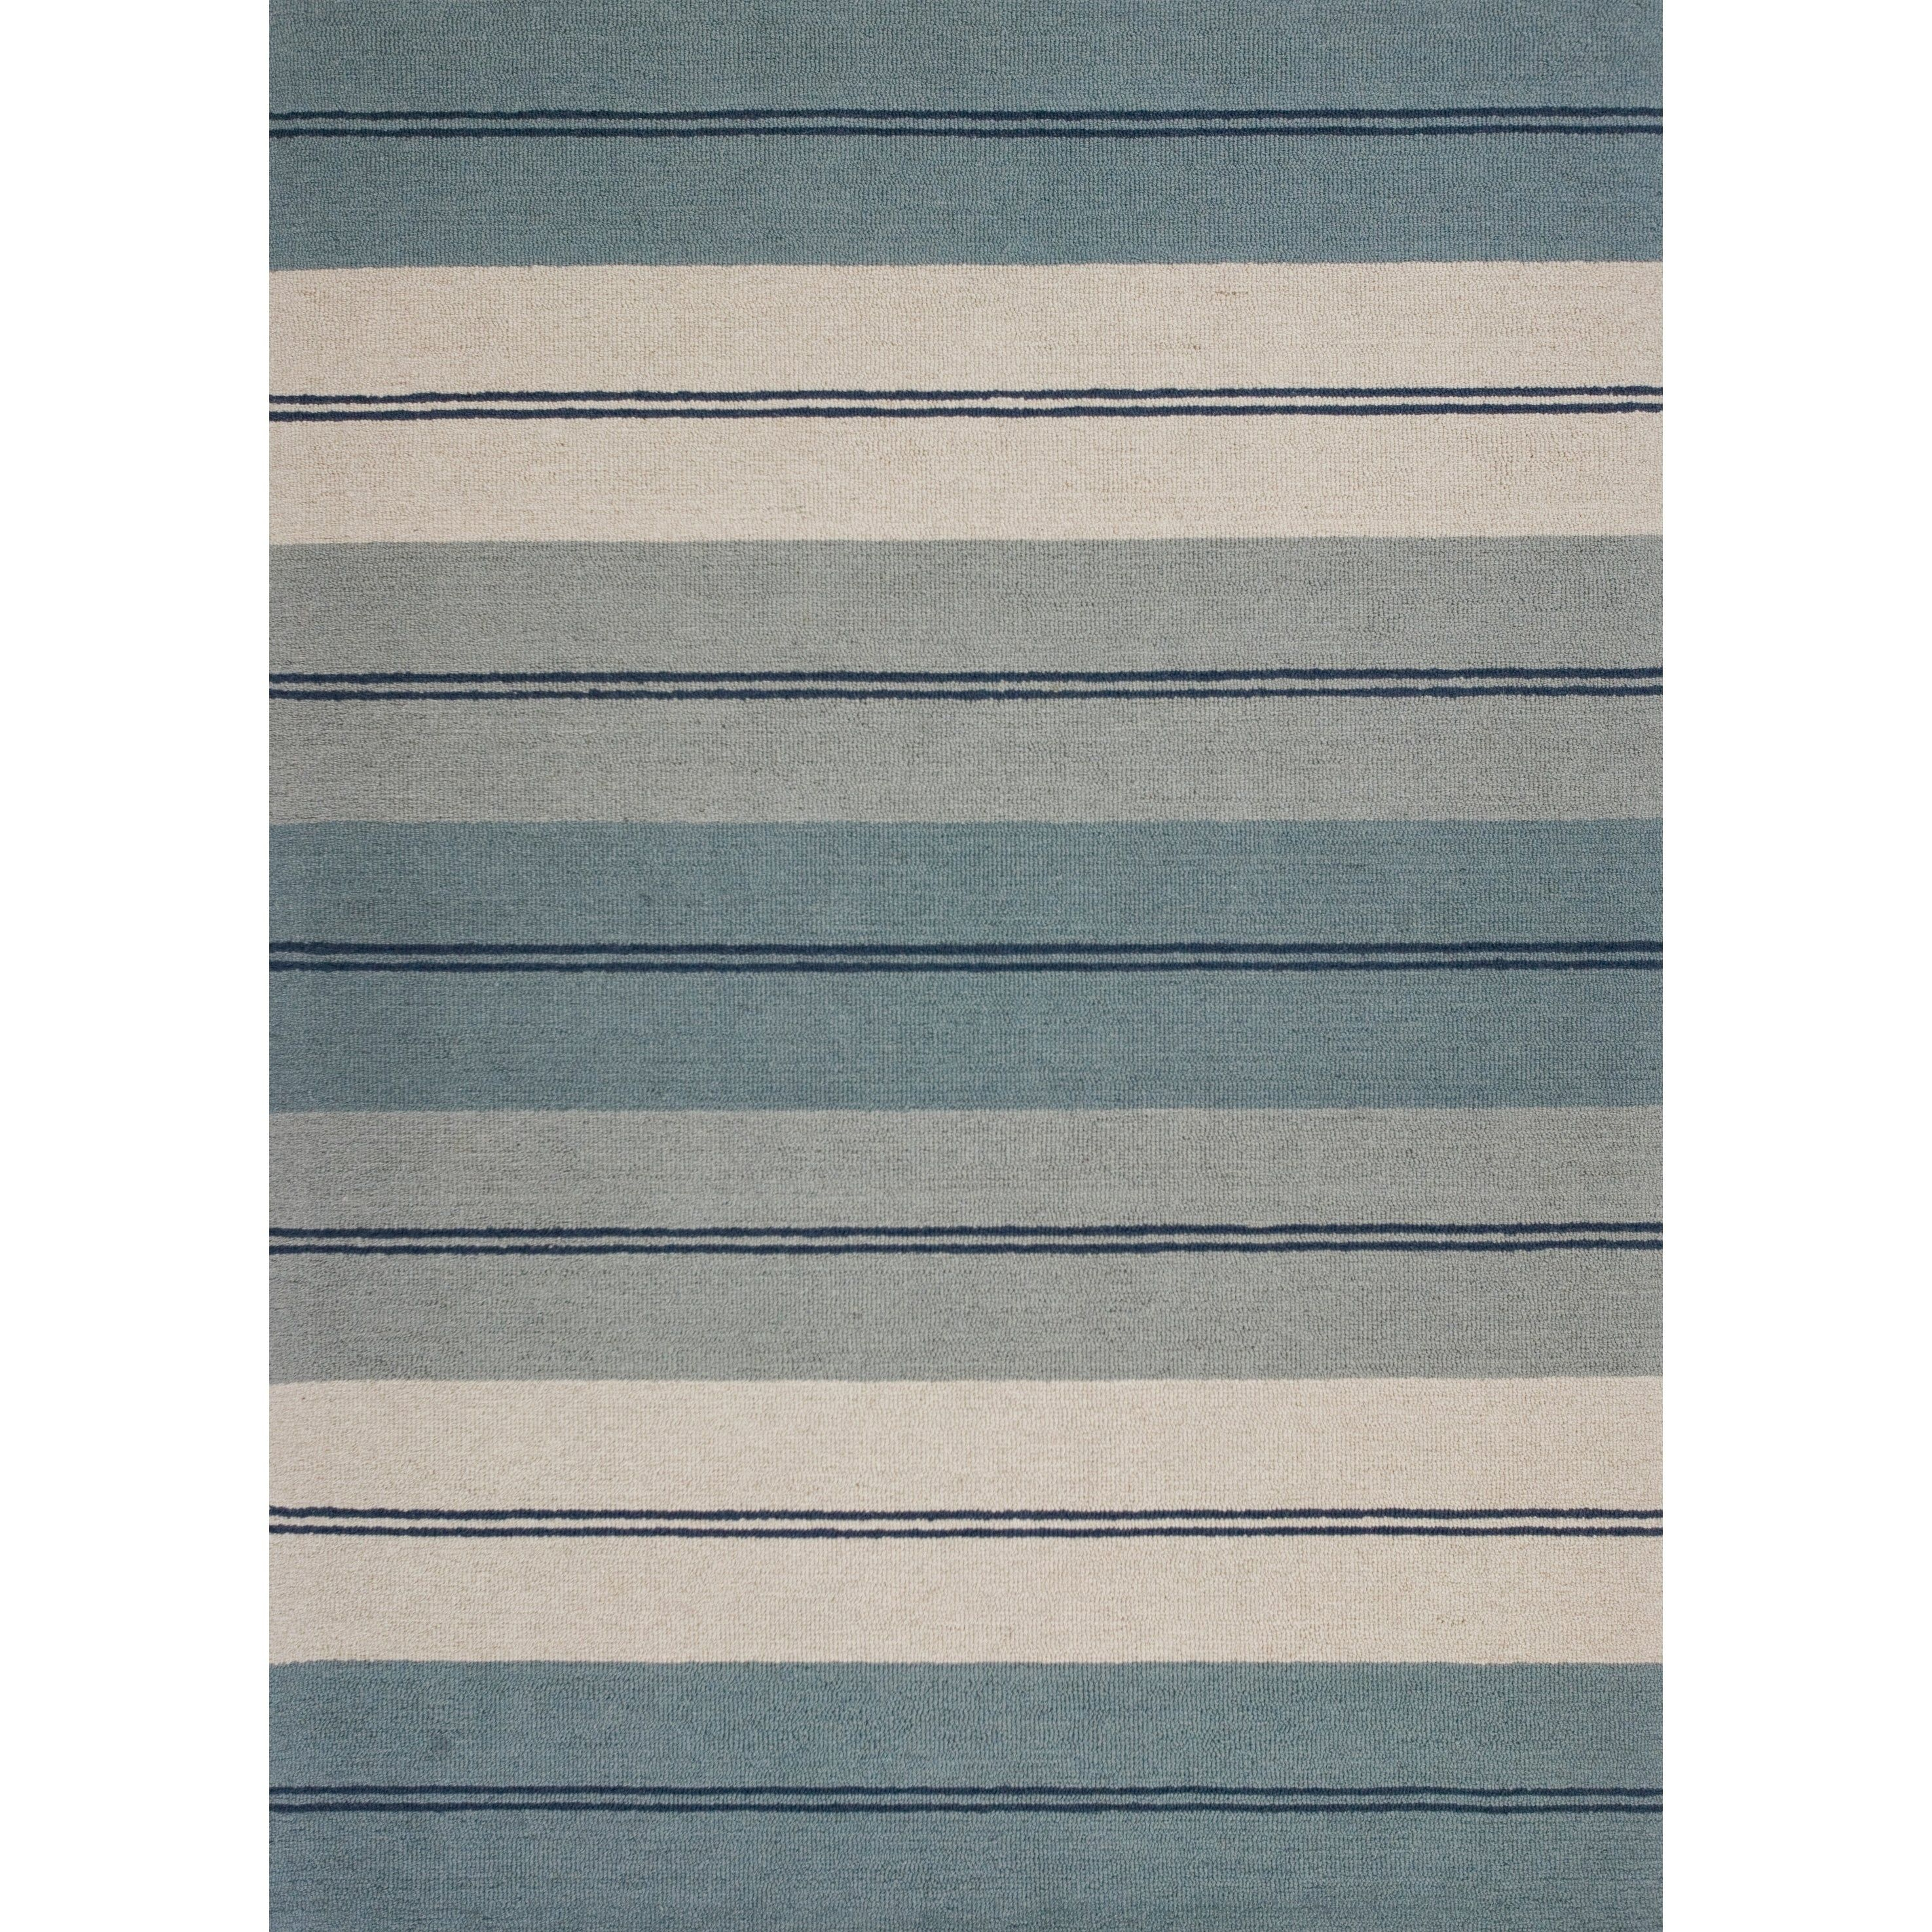 Domani Bryant Ivory Blue Striped Area Rug In 2020 Rugs Area Rugs Oriental Rug